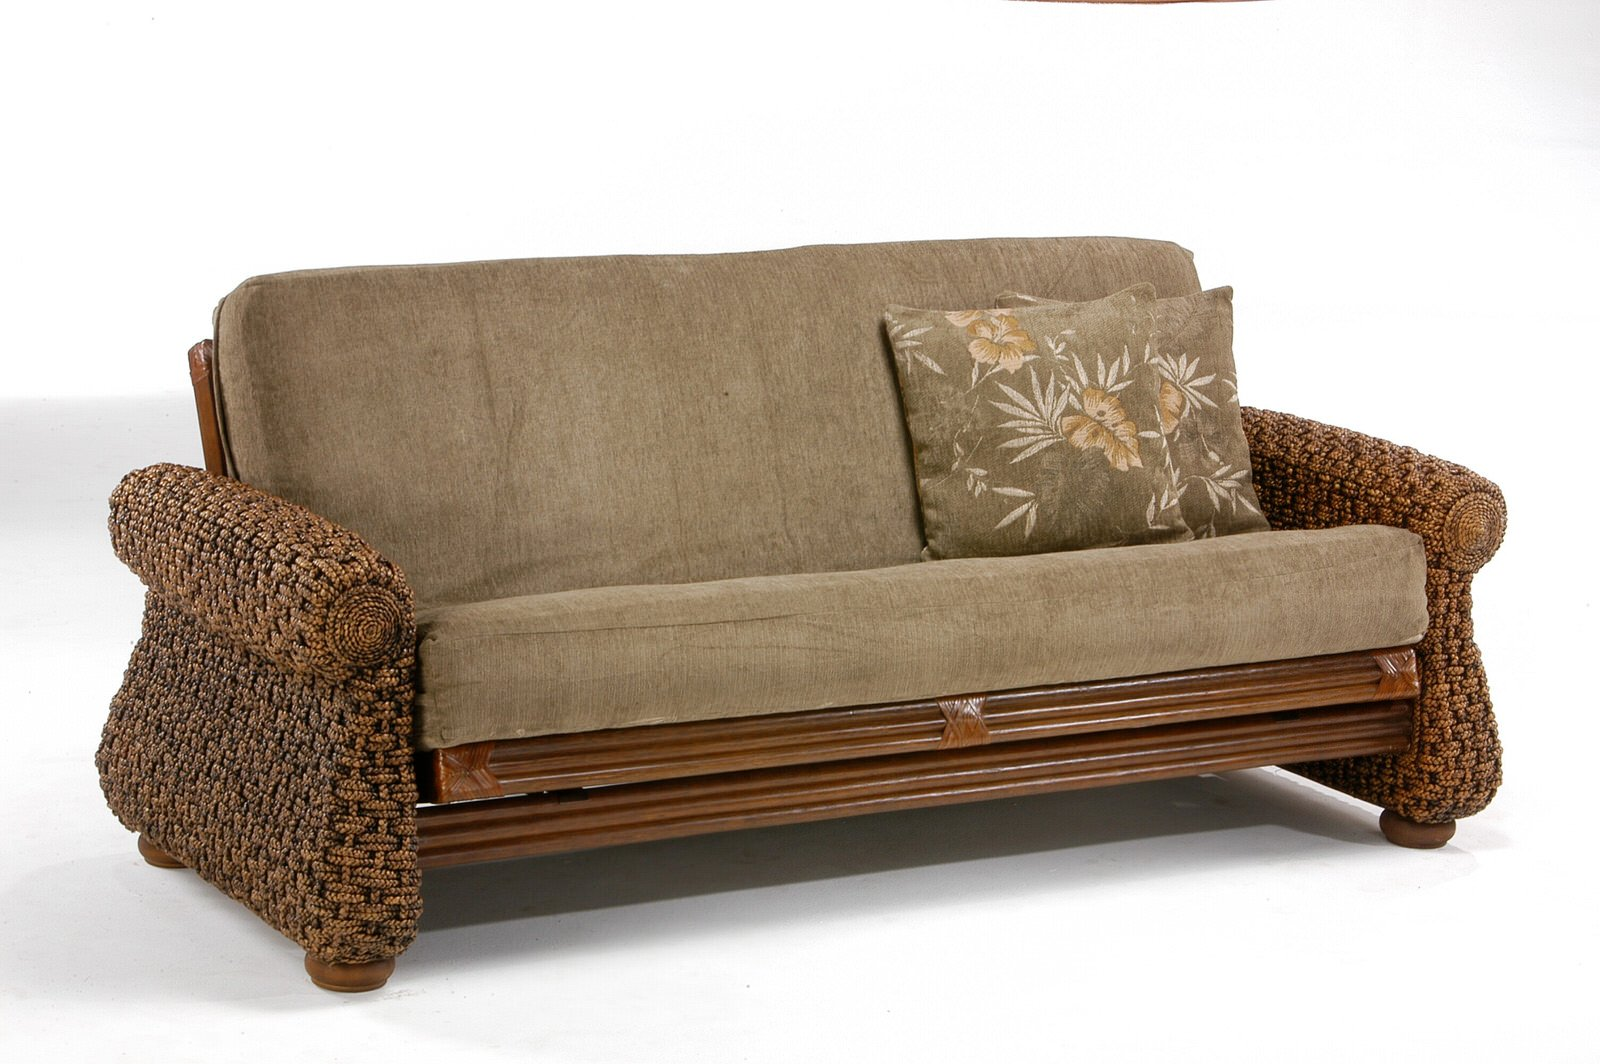 Wicker Futon Sofa Bed Wicker Futon